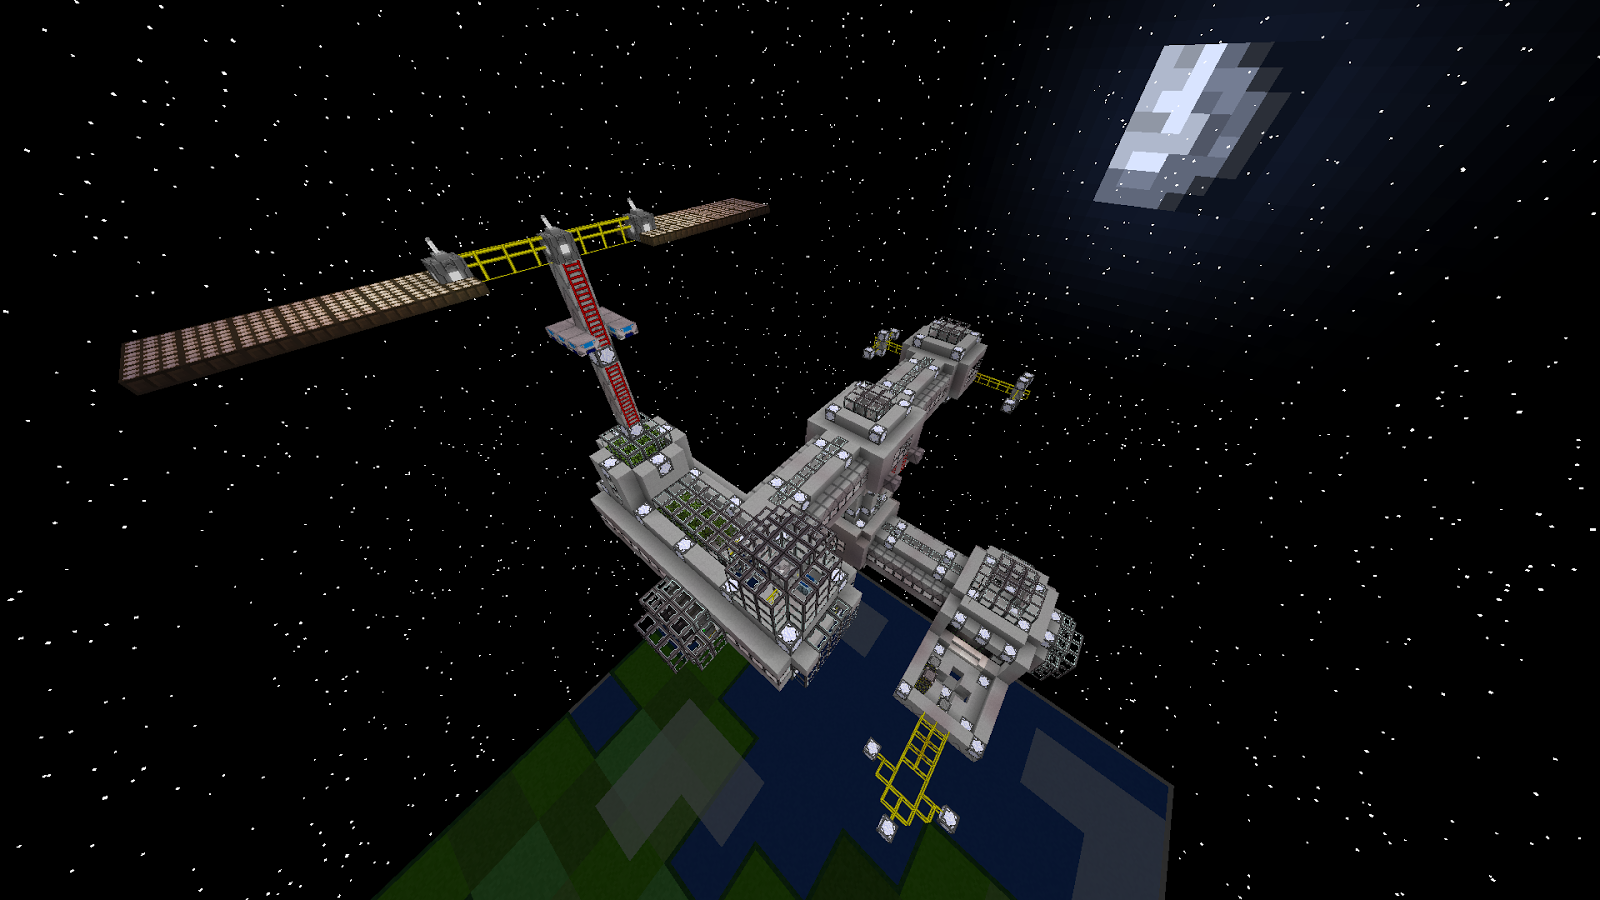 How To Build A Rocket In Minecraft No Mods